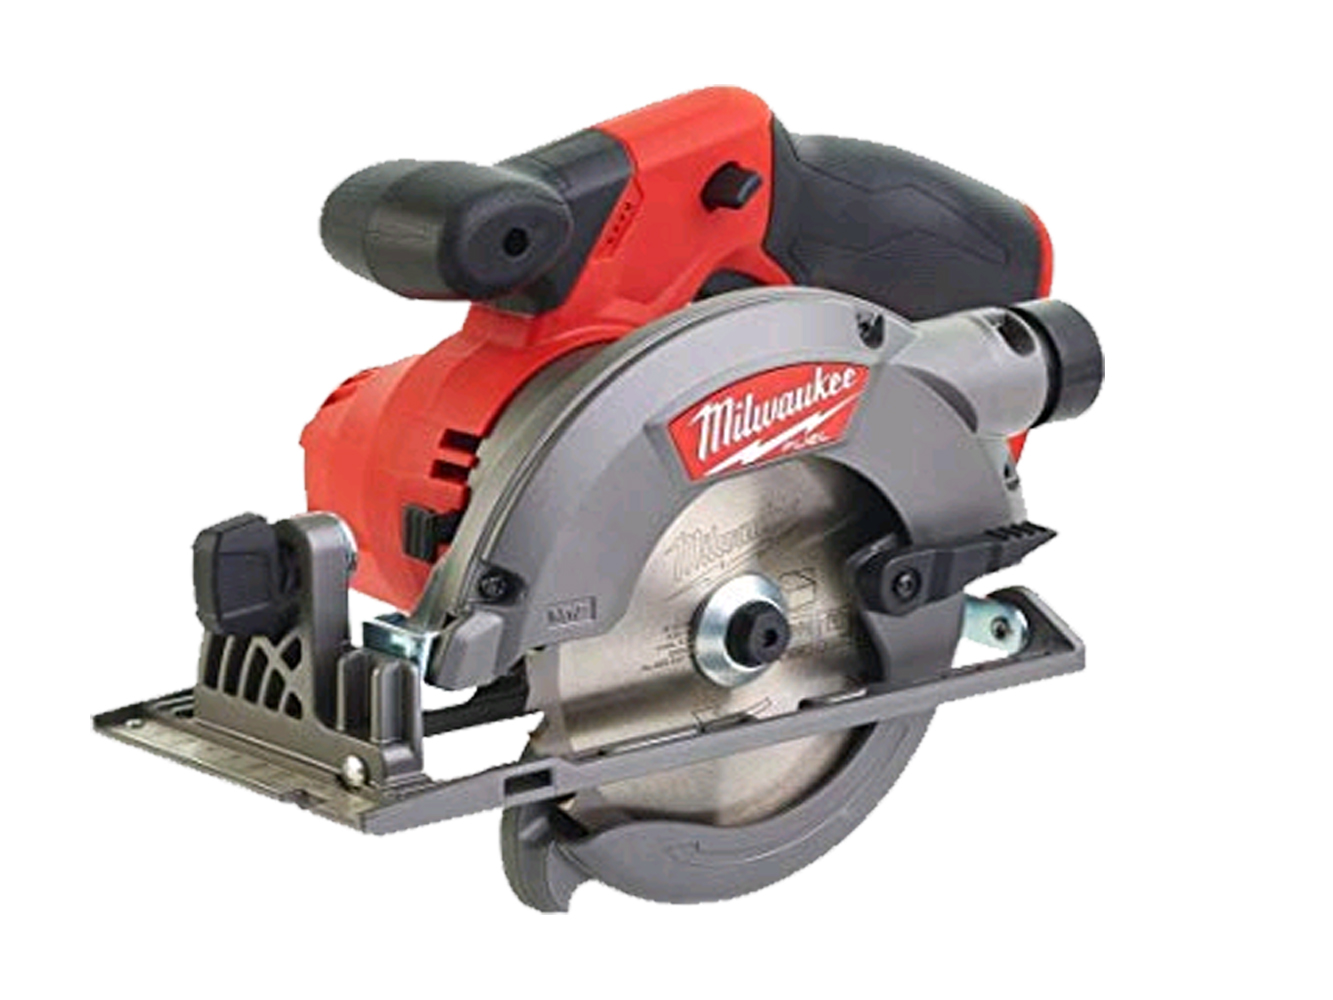 MILWAUKEE 12V FUEL BRUSHLESS 44MM CIRCULAR SAW - M12CCS44 - BODY ONLY